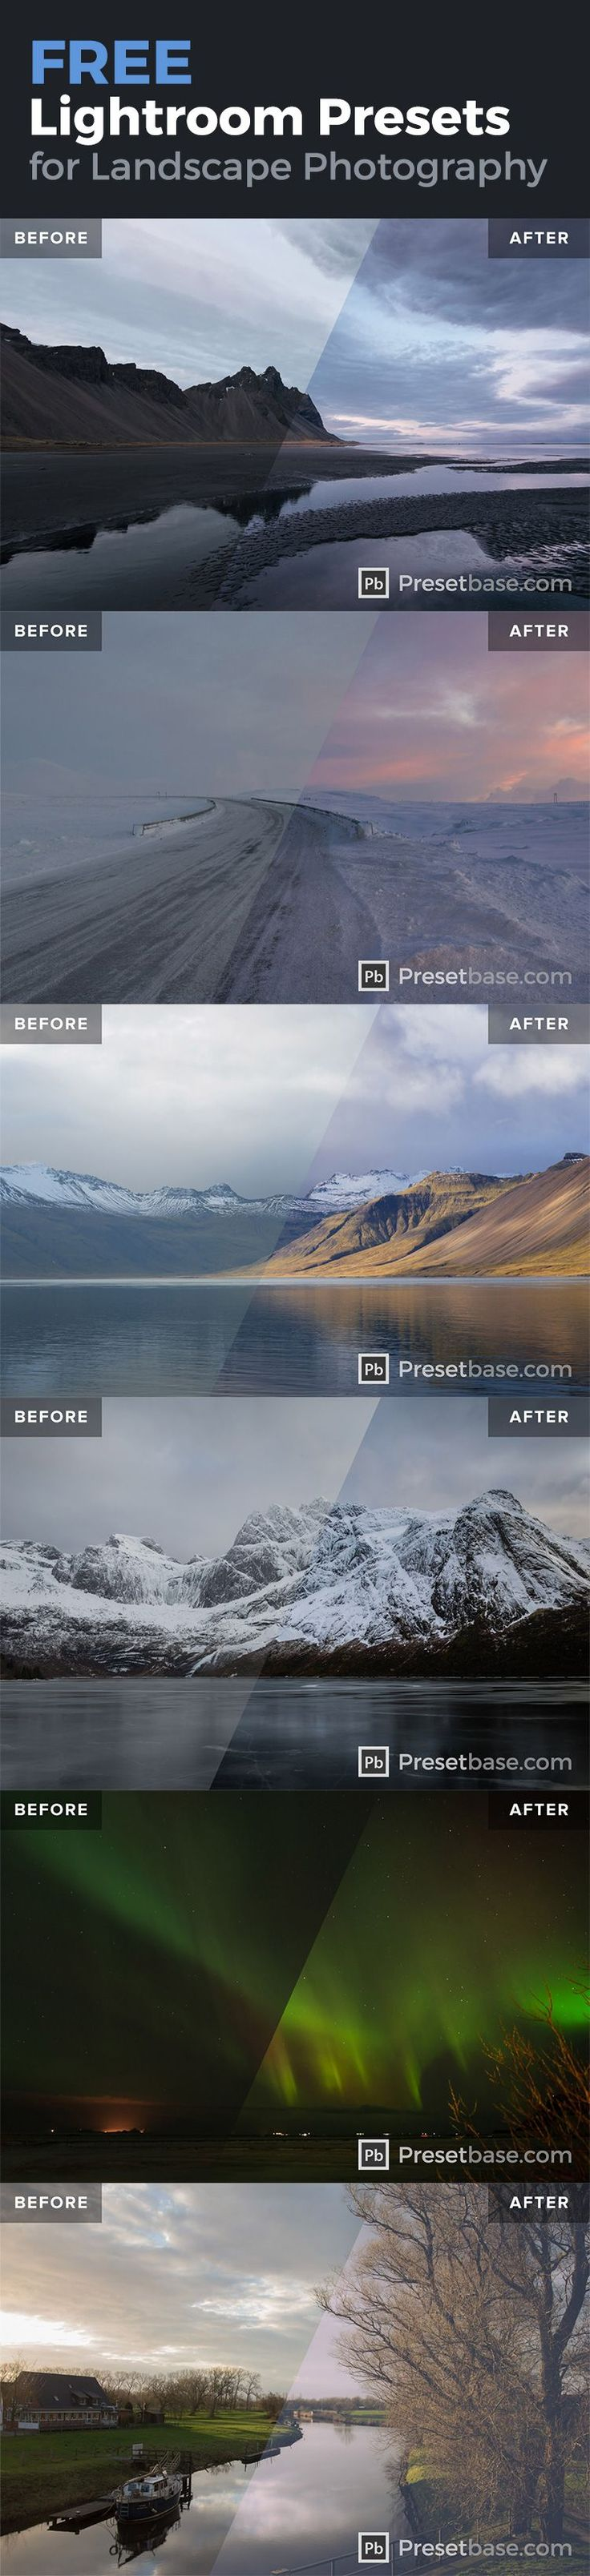 This tutorial helps enhance and make your landscape photo stand out more.